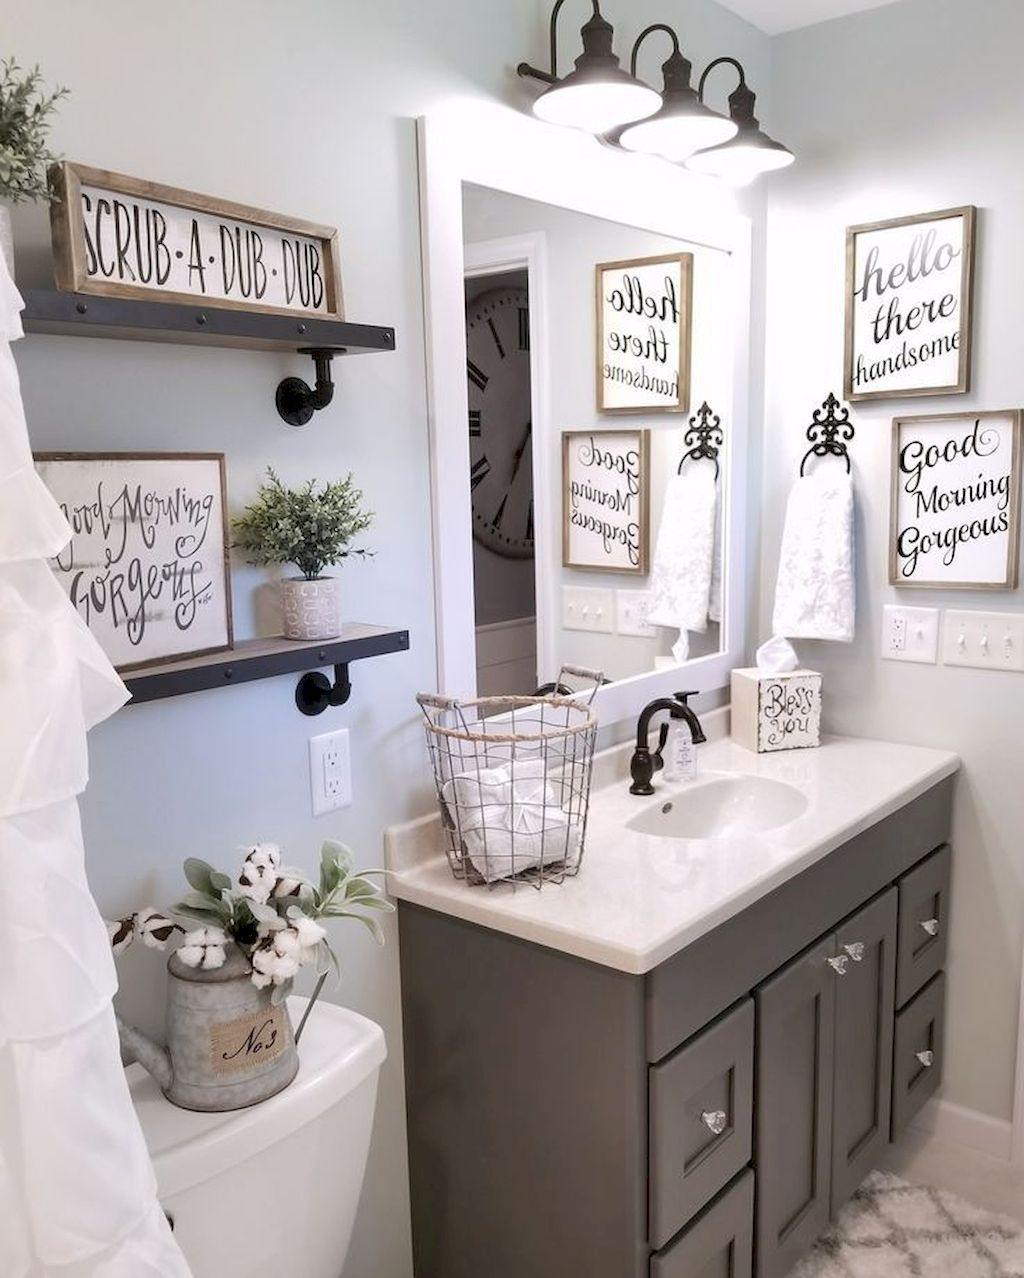 Superbe Gorgeous 110 Spectacular Farmhouse Bathroom Decor Ideas  Https://roomadness.com/2017